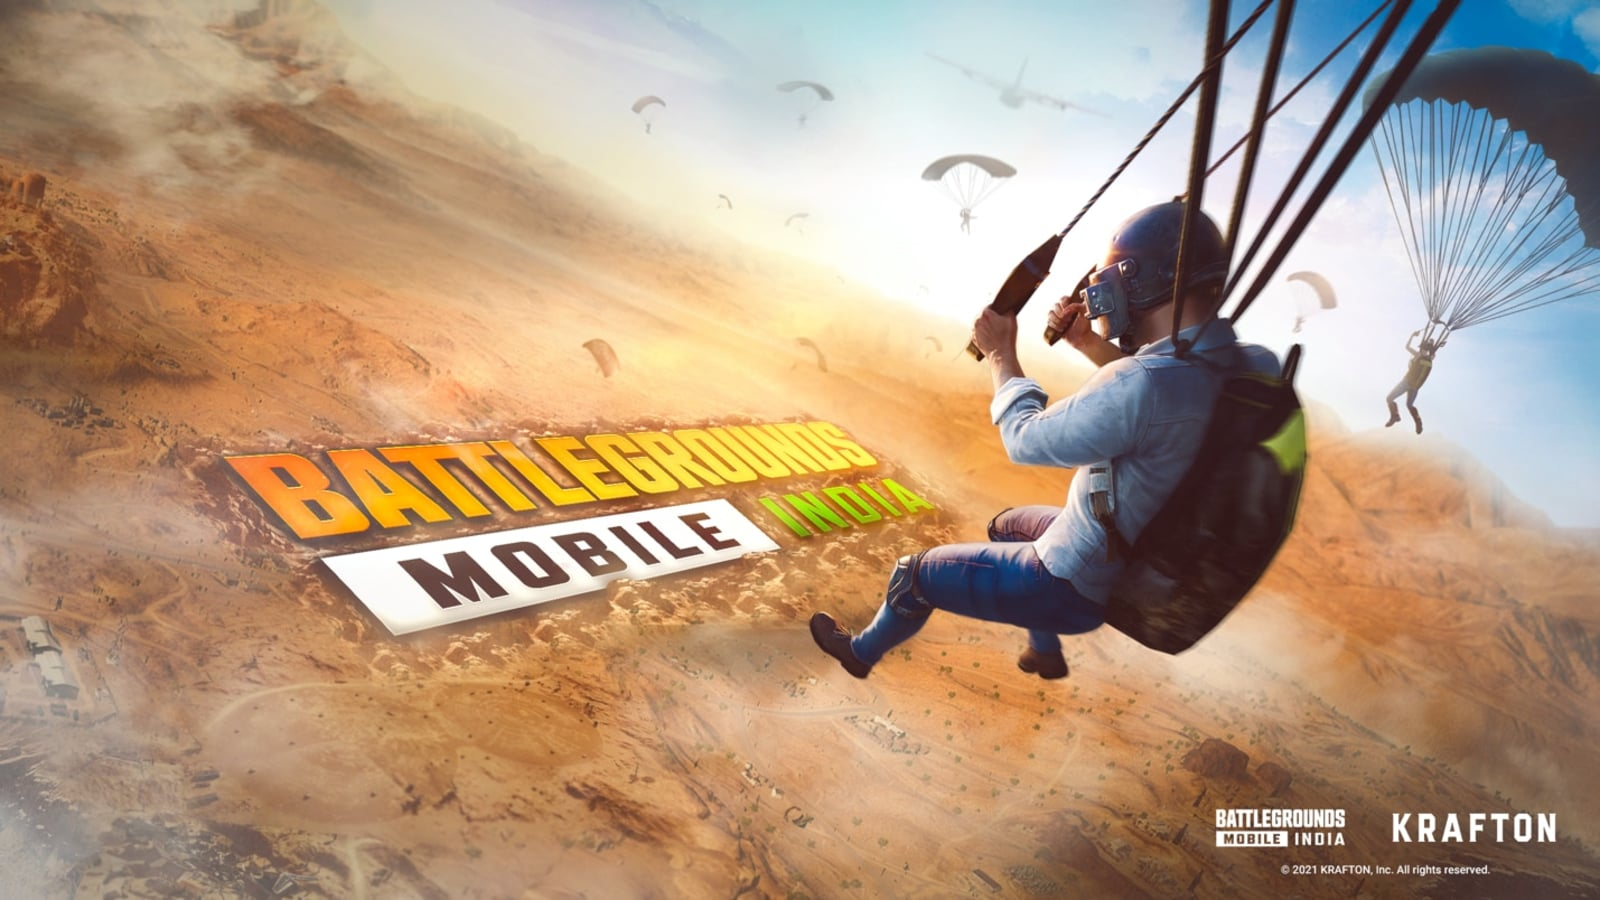 Advance registrations for Battlegrounds Mobile India in the Google Play Store are $ 20 million